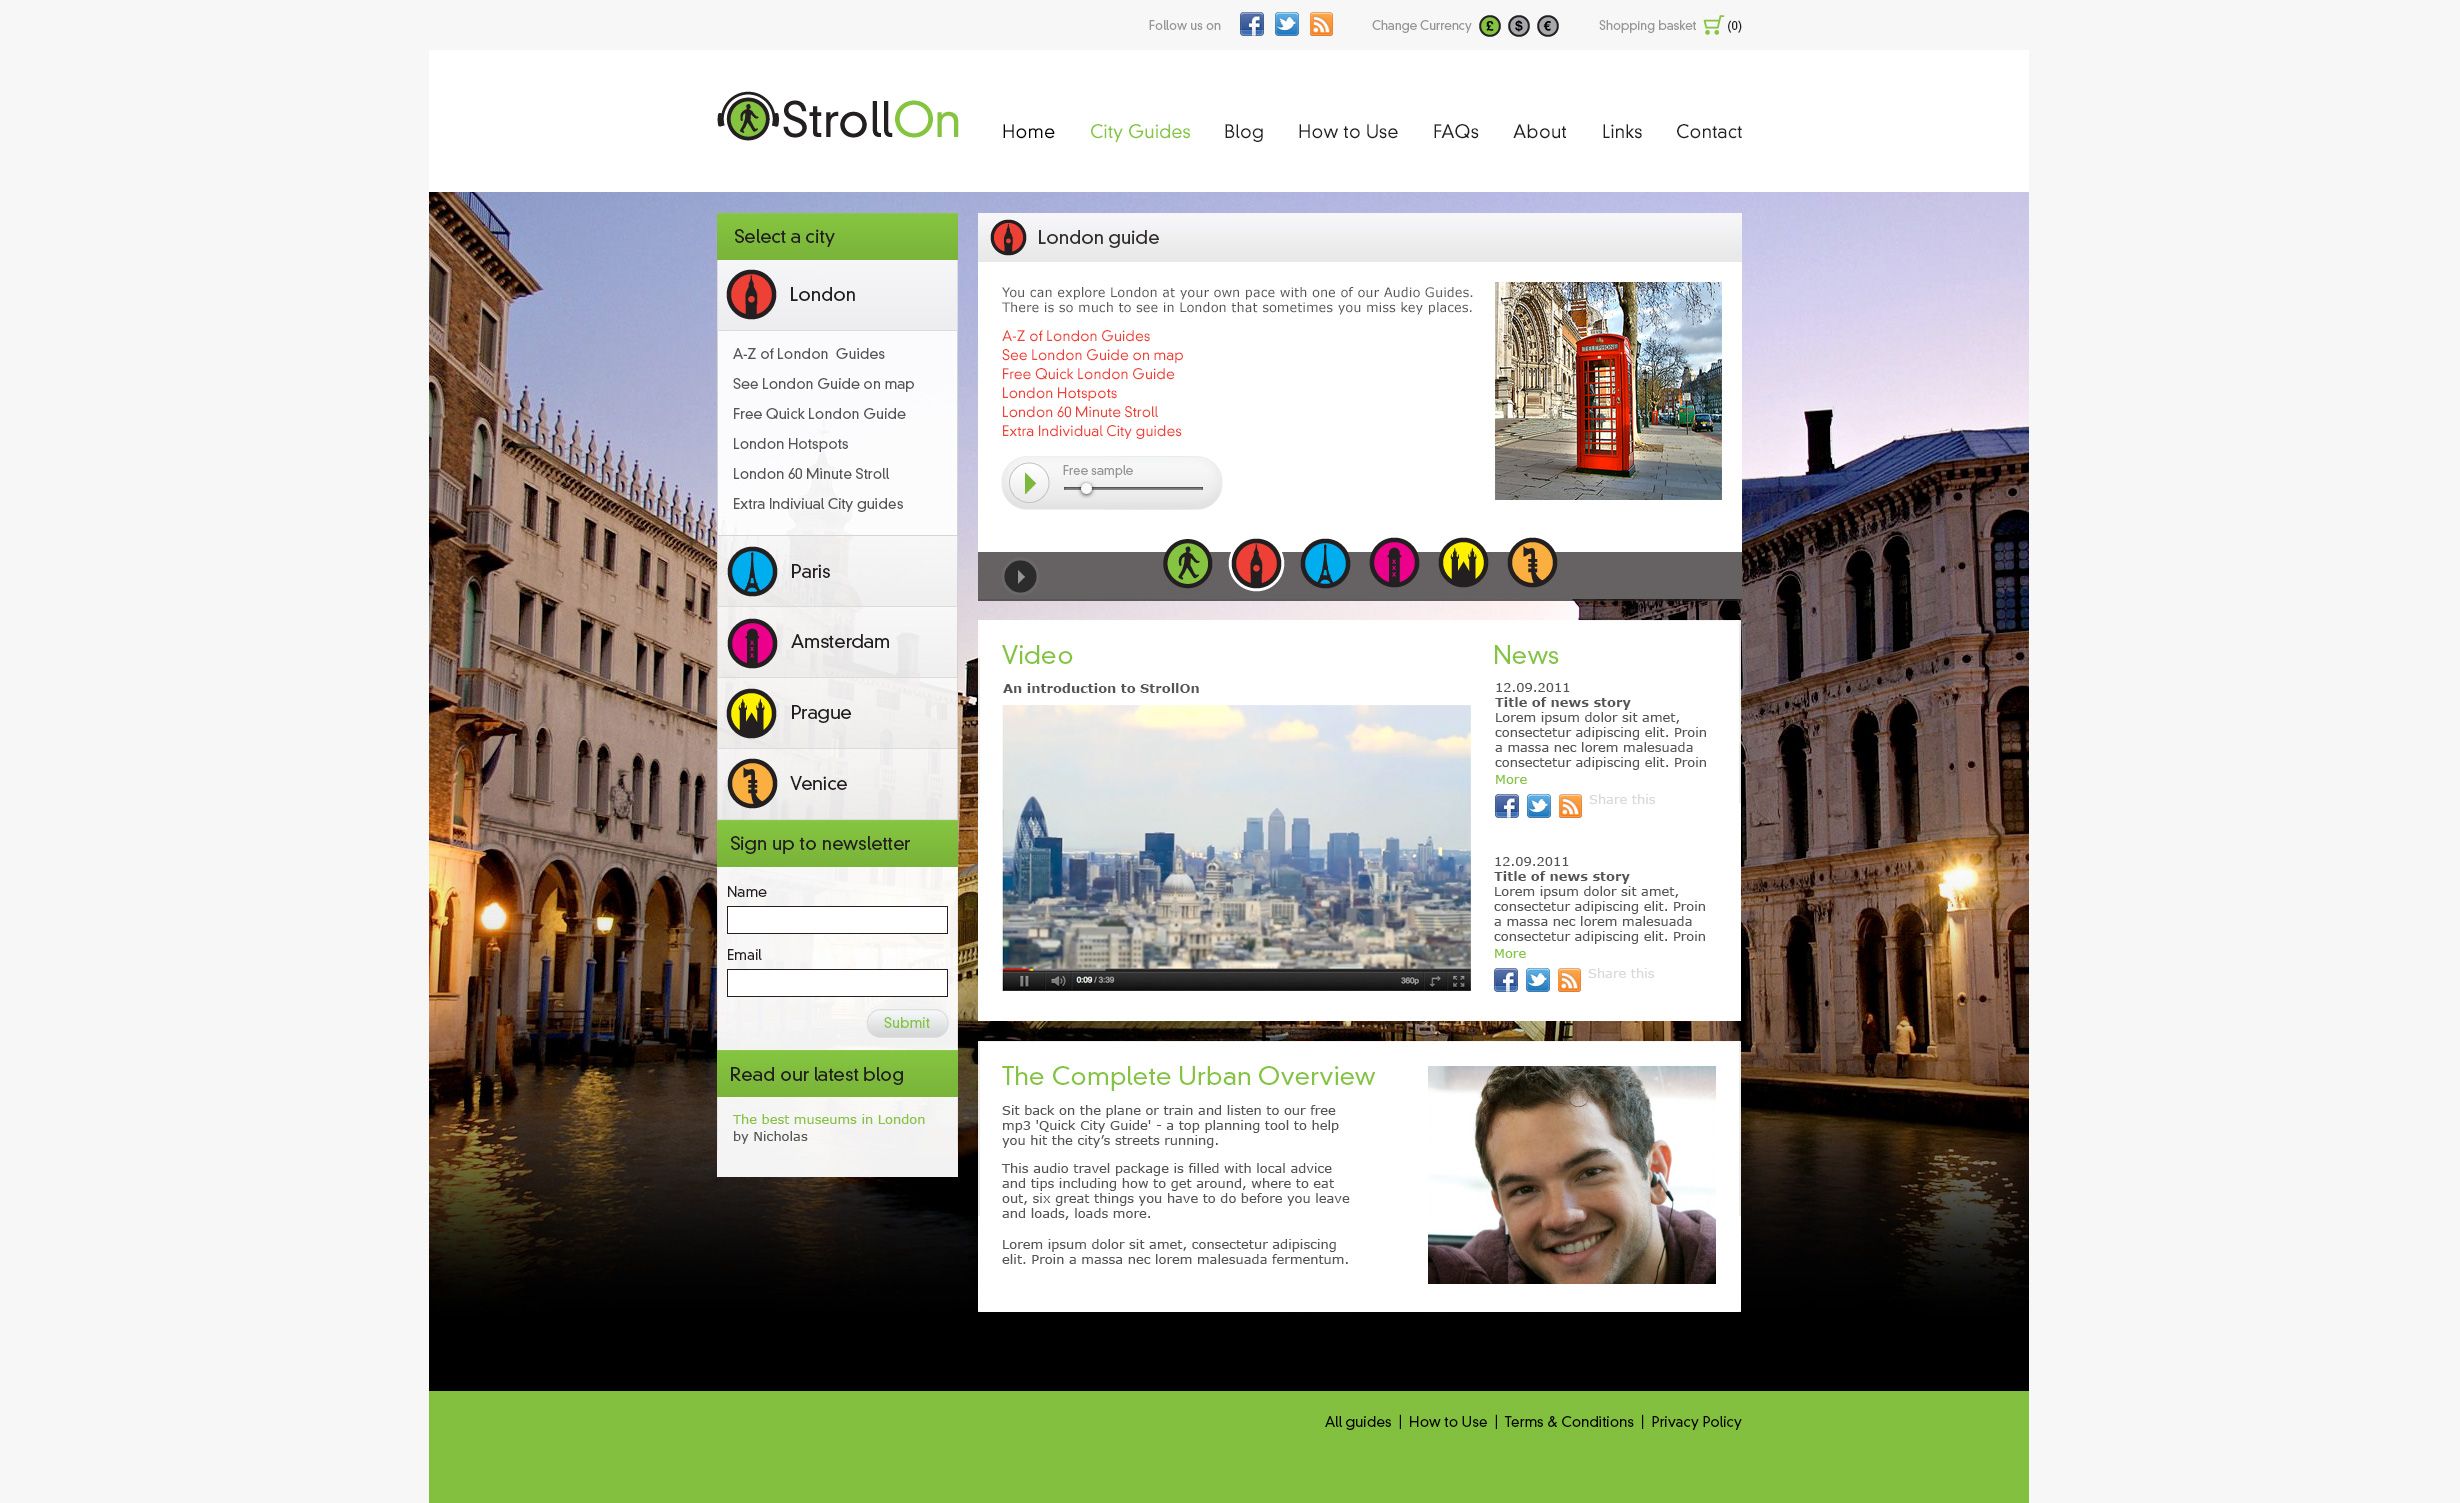 StrollOn website